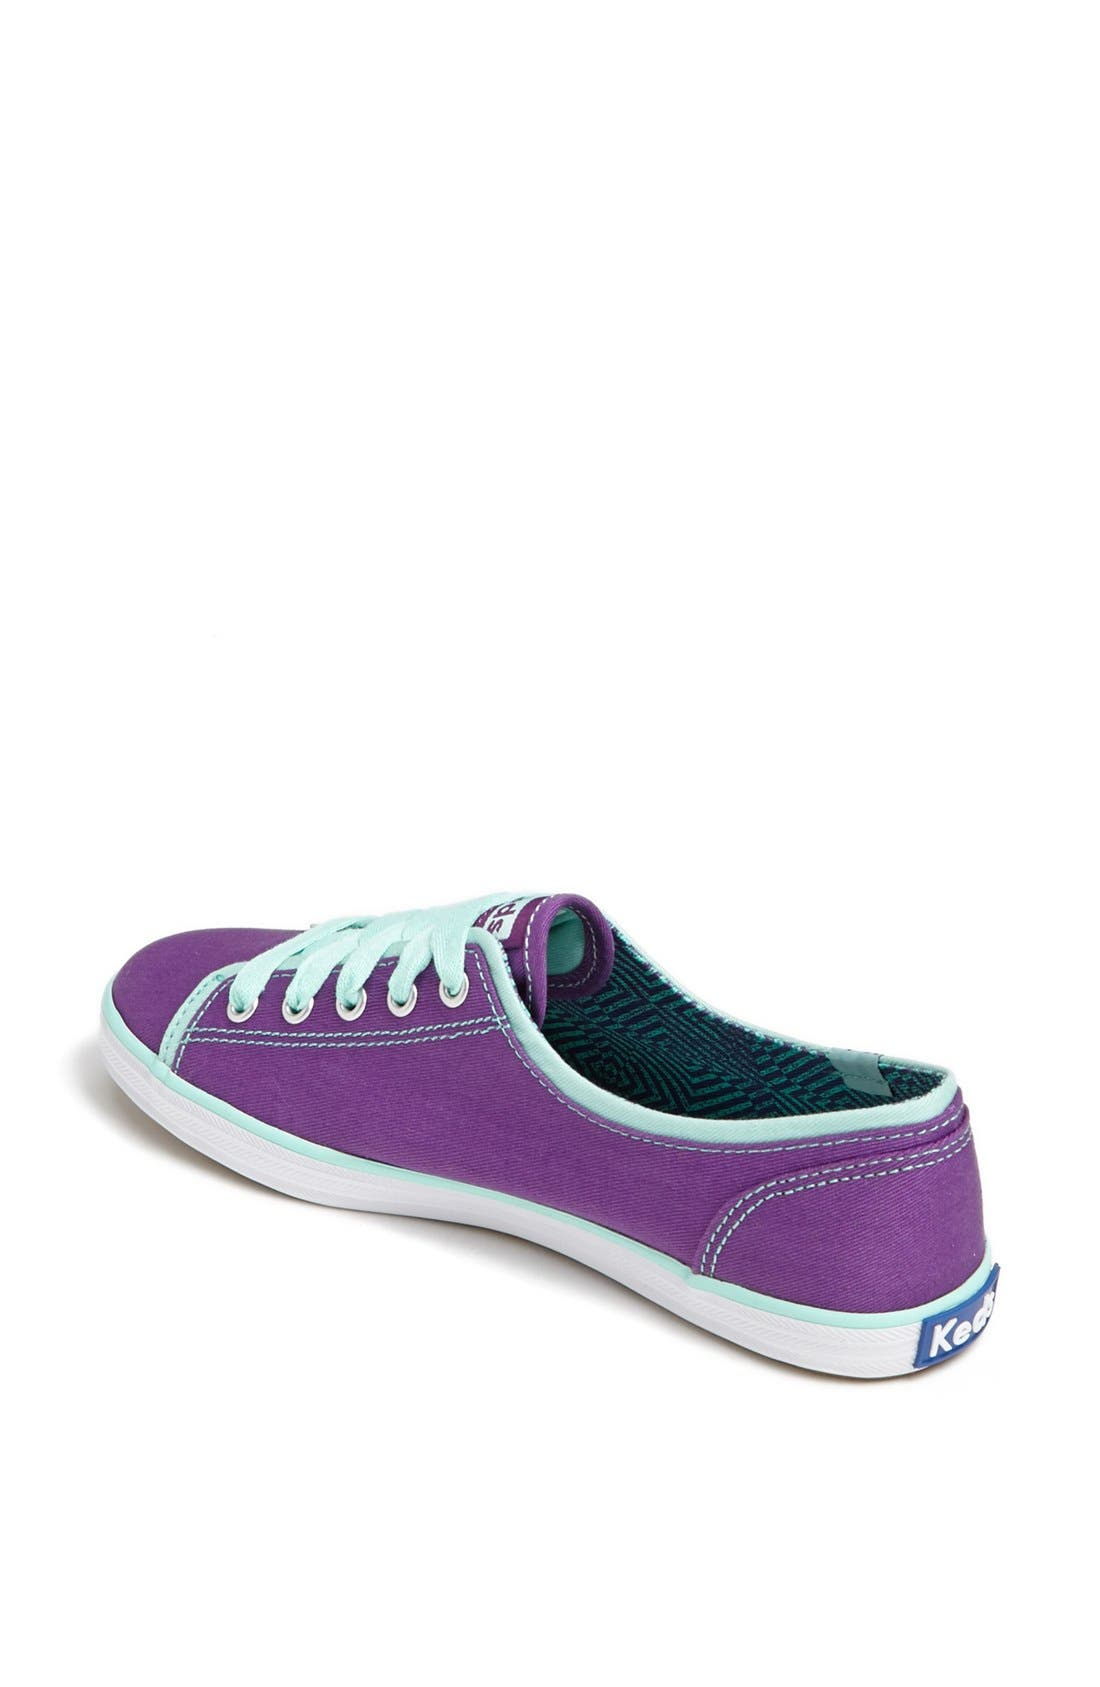 Alternate Image 2  - Keds® 'Rally' Sneaker (Women)